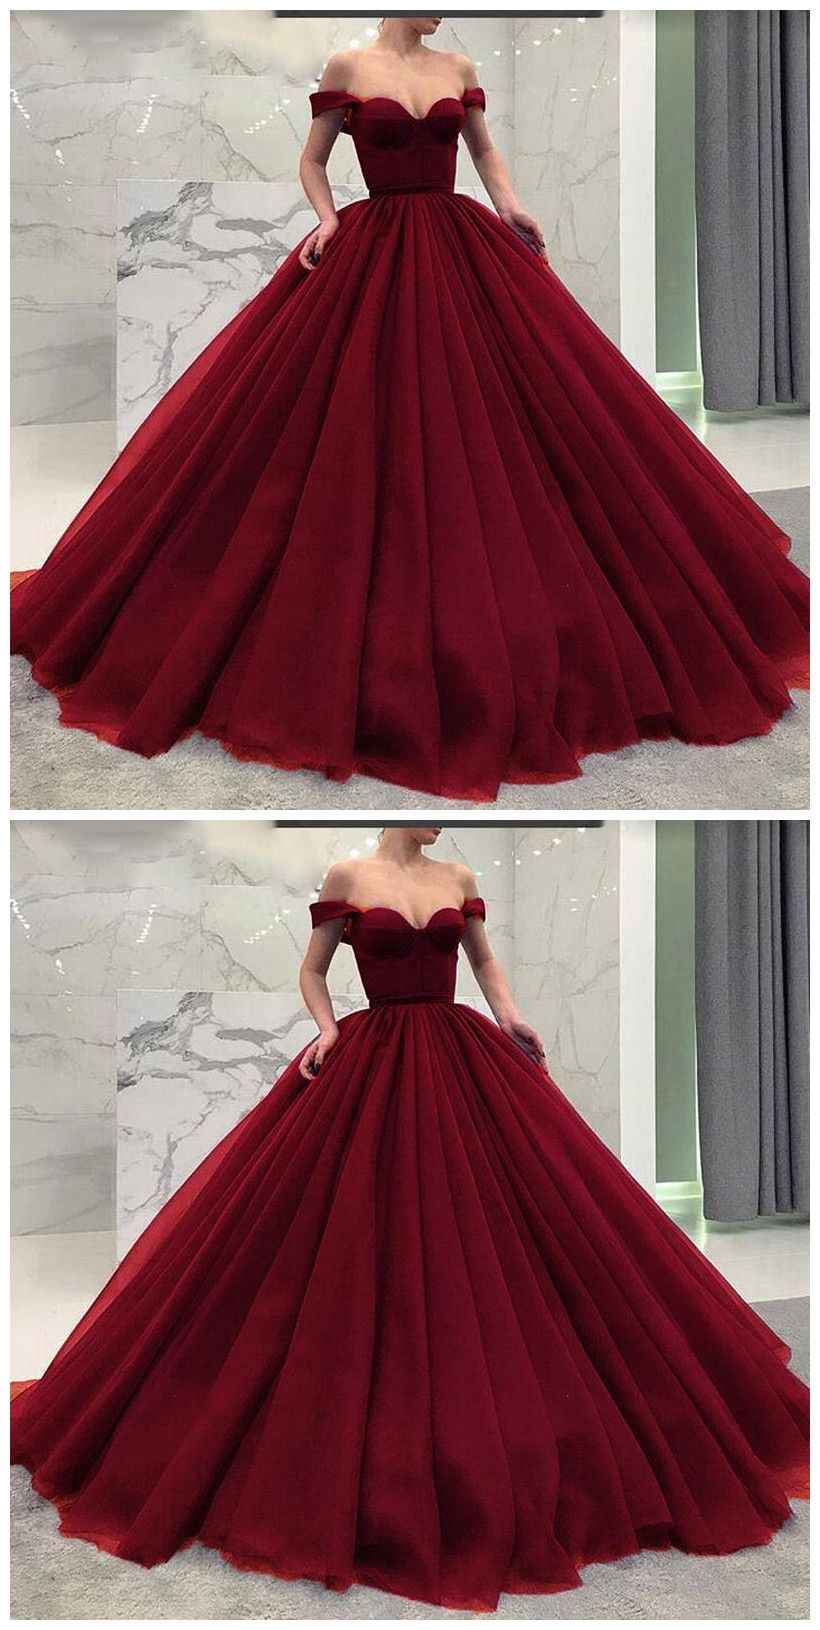 Fashionable Poofy Ball Gown Burgundy Wedding Dresses Off the ...